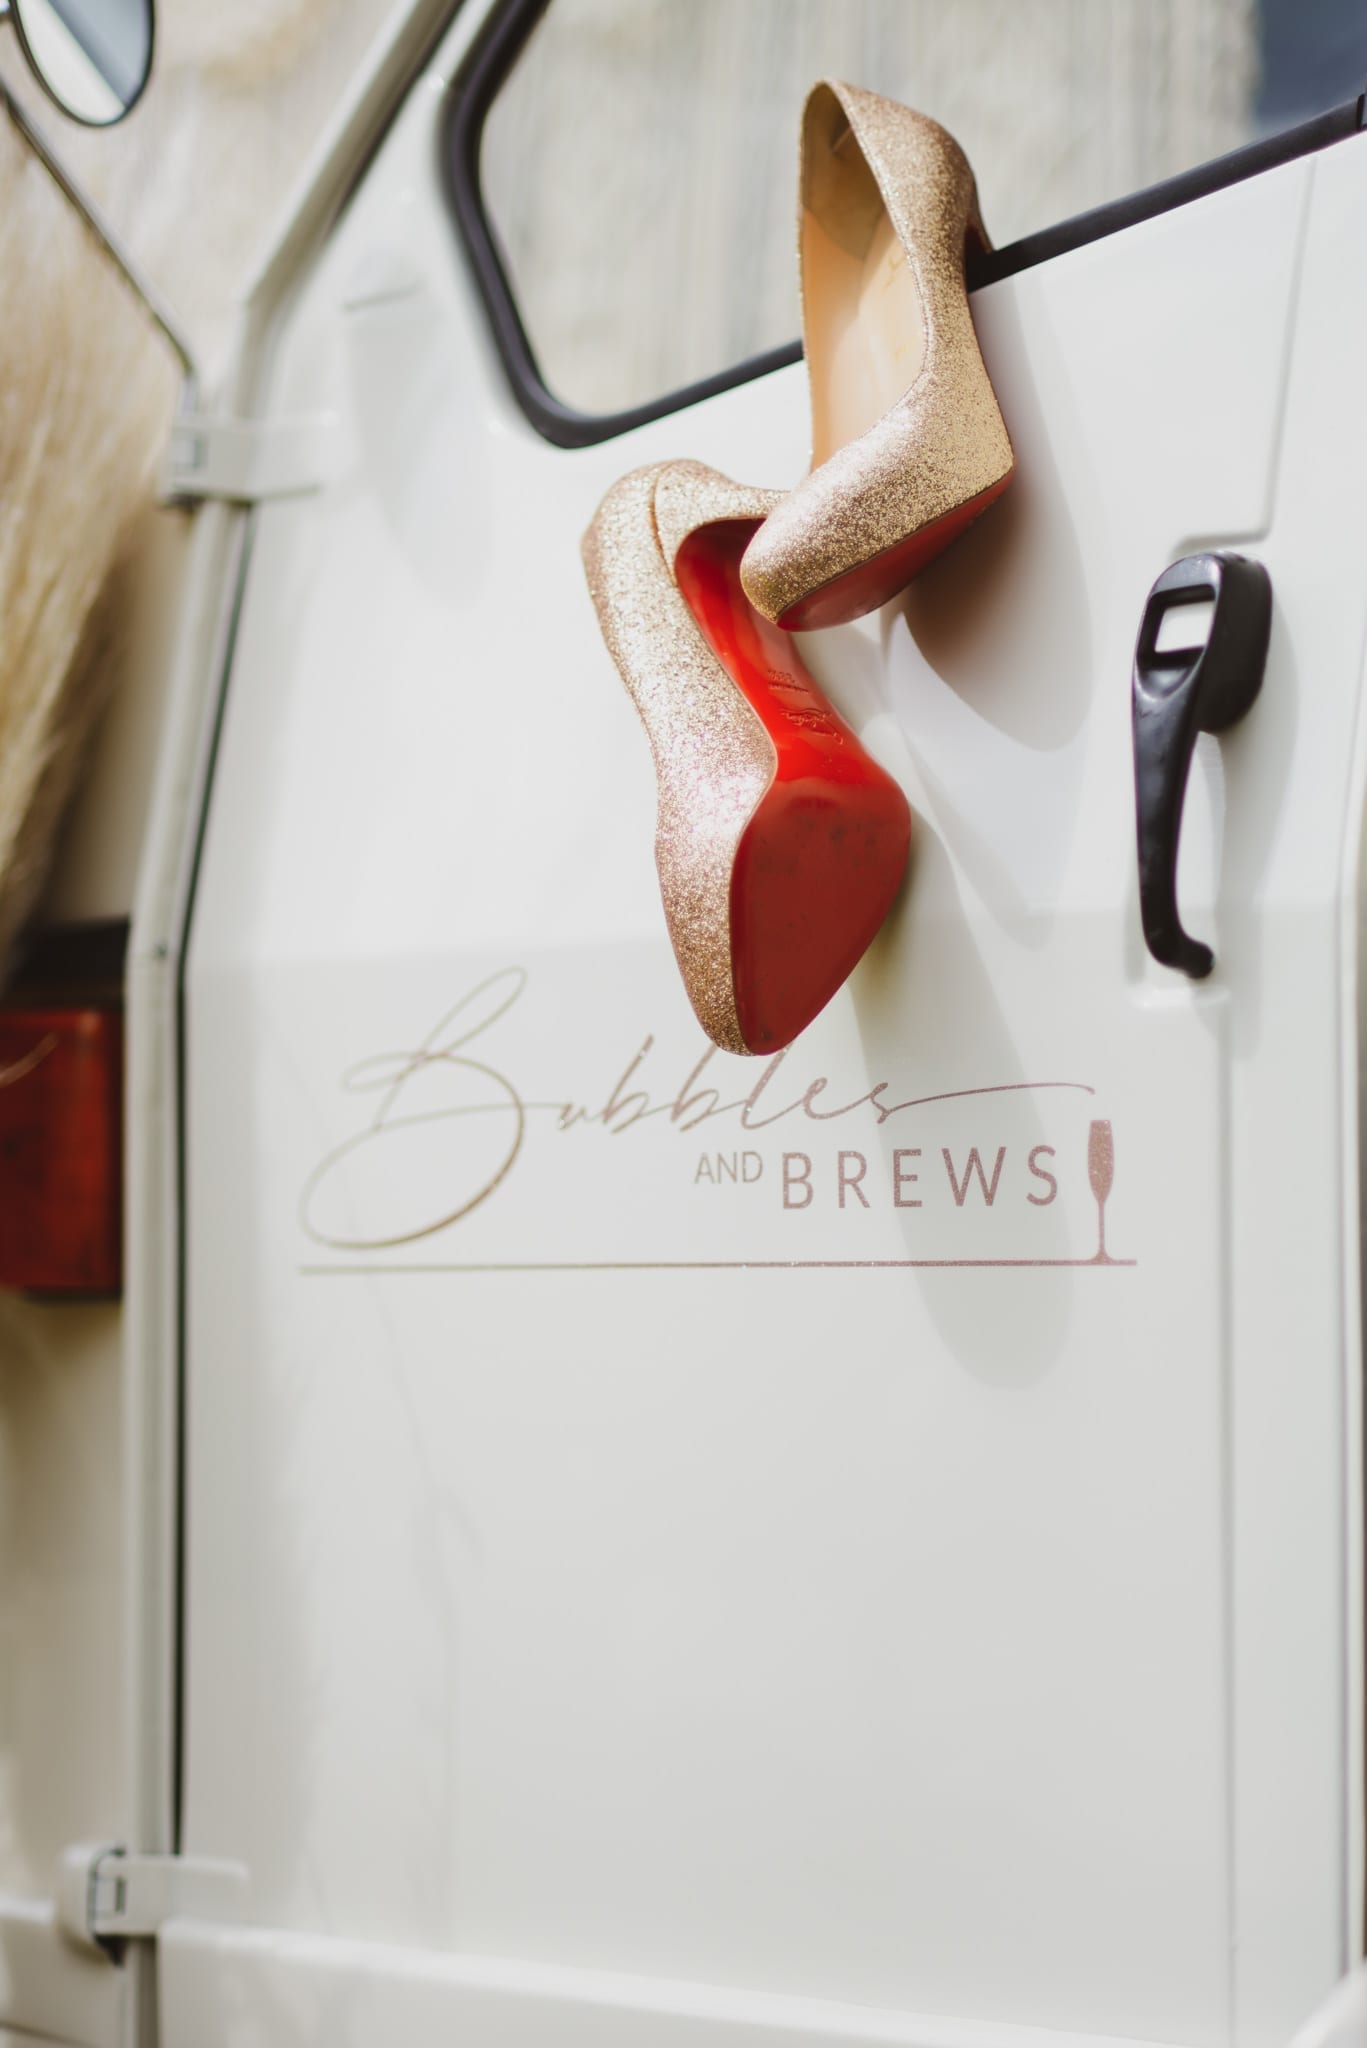 Girls Night Out Christian Louboutin Shoes on Bubbles and Brews Prosecco Cart Door